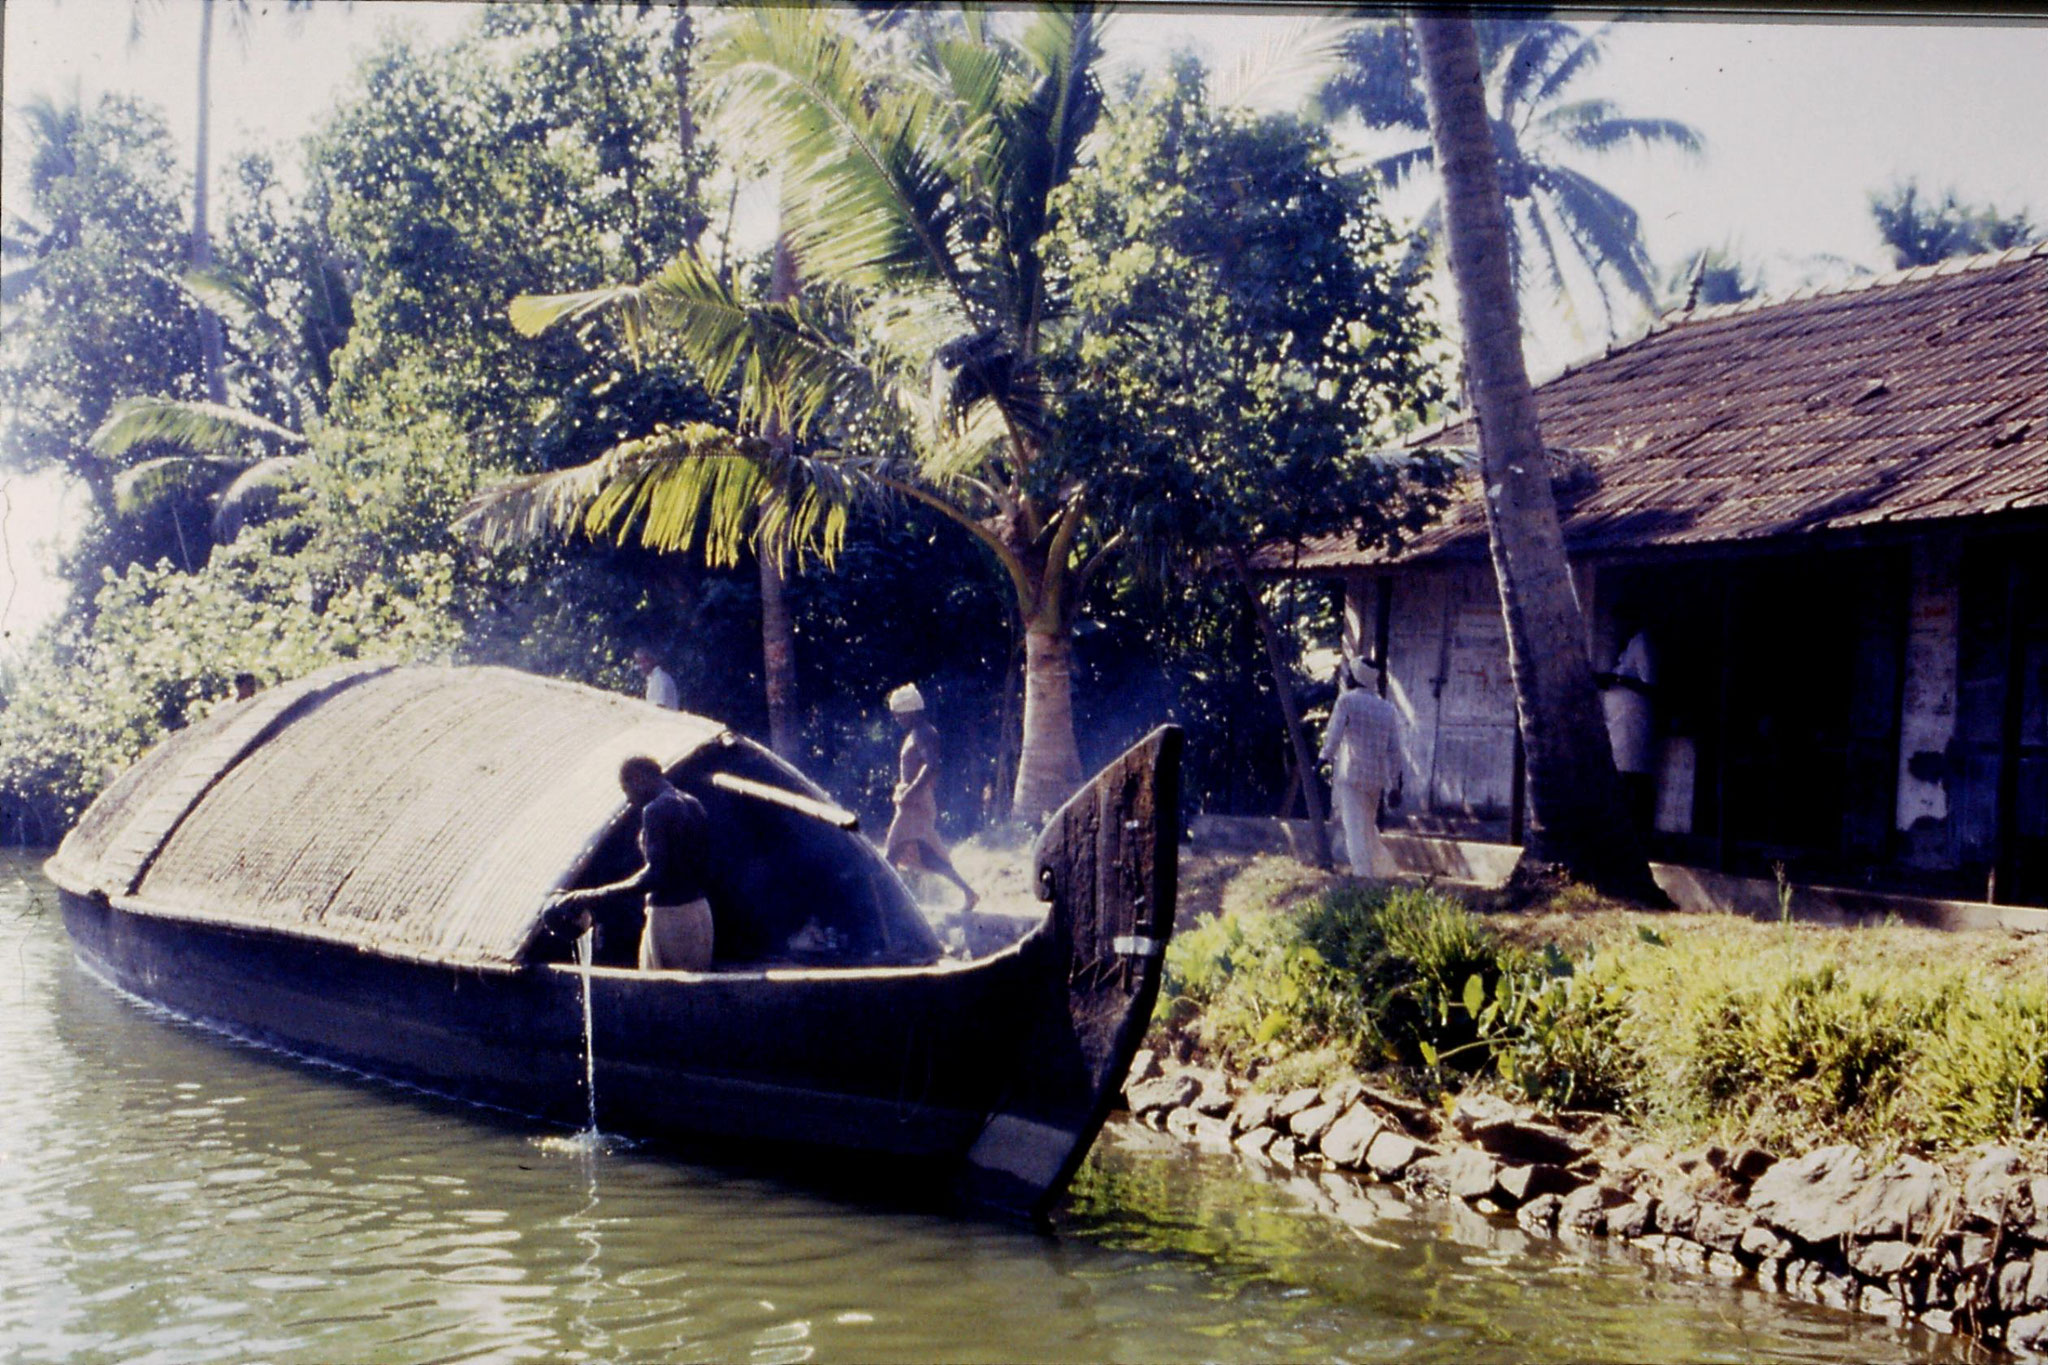 106/5: 23/2/1990 Boat to Alleppey